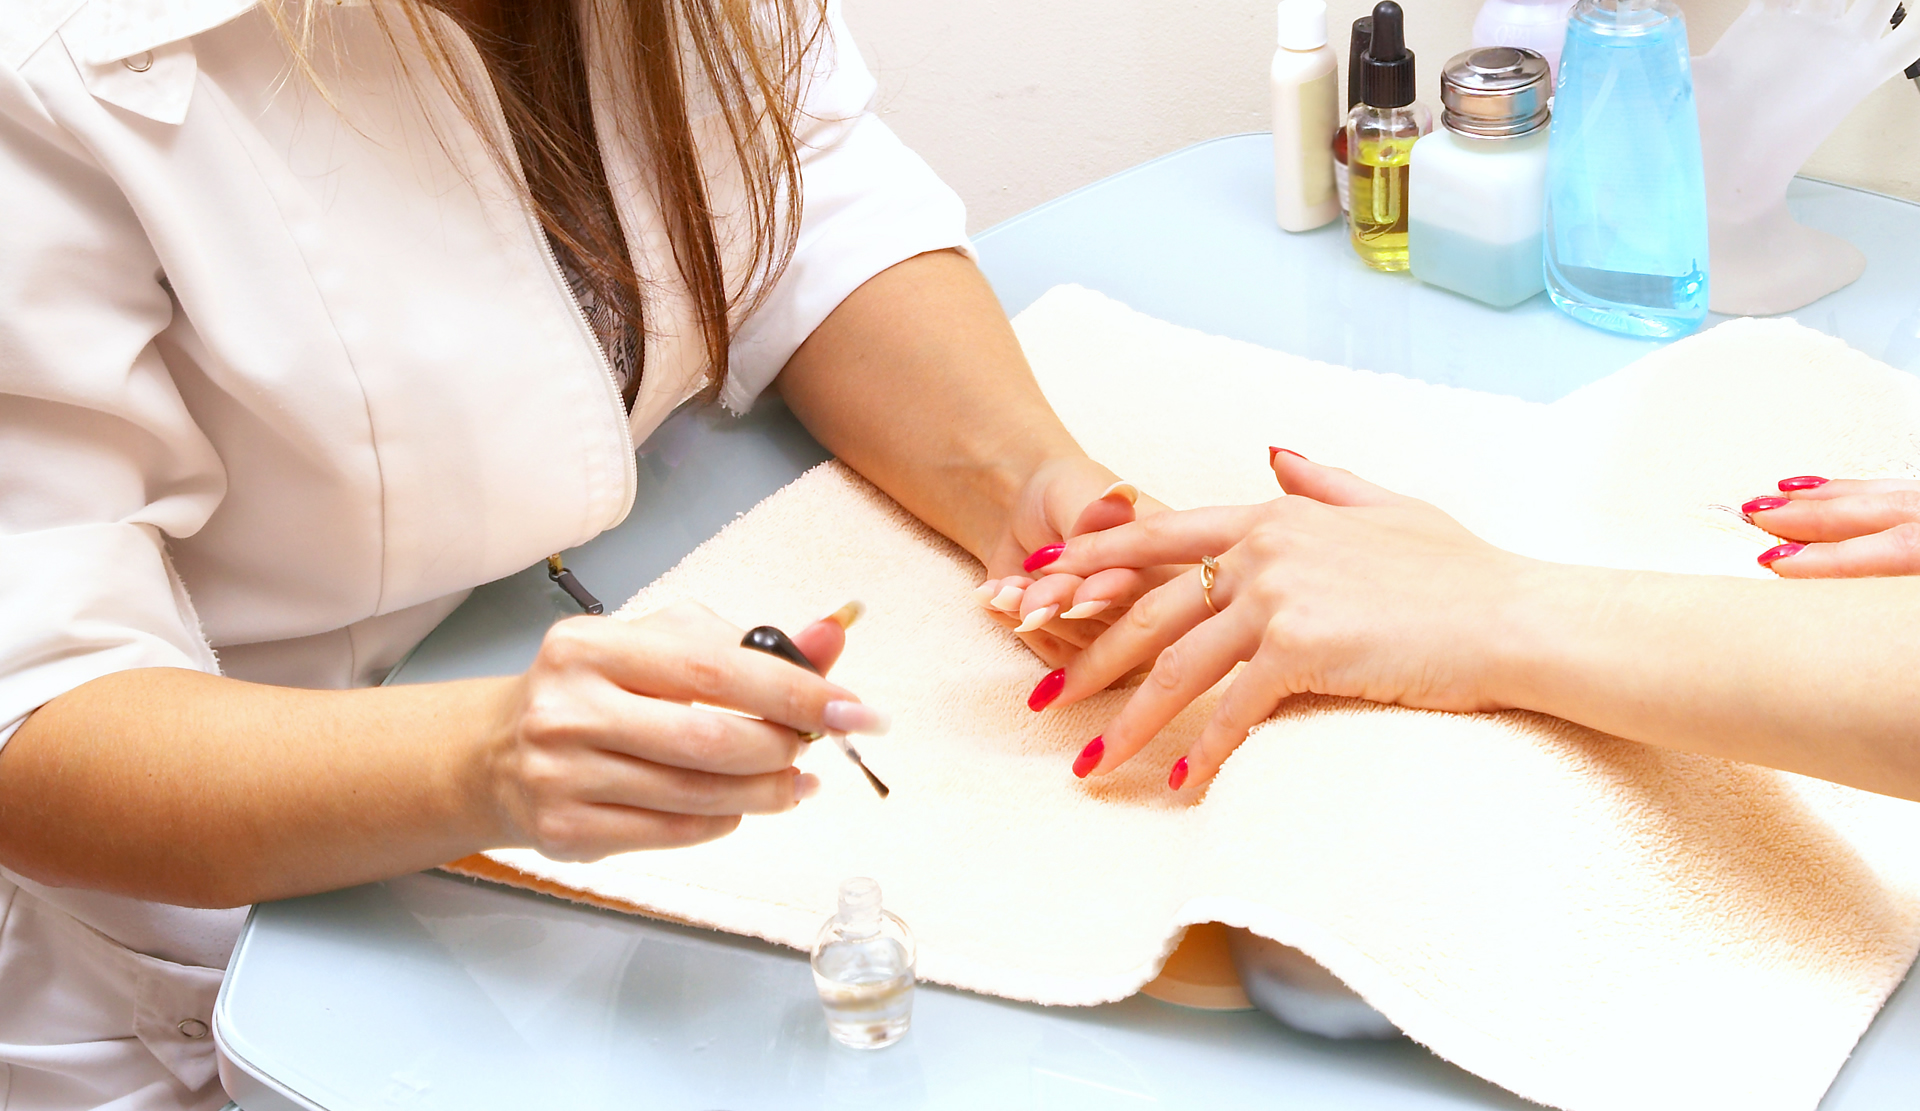 manicure-pedicure-safety.jpg